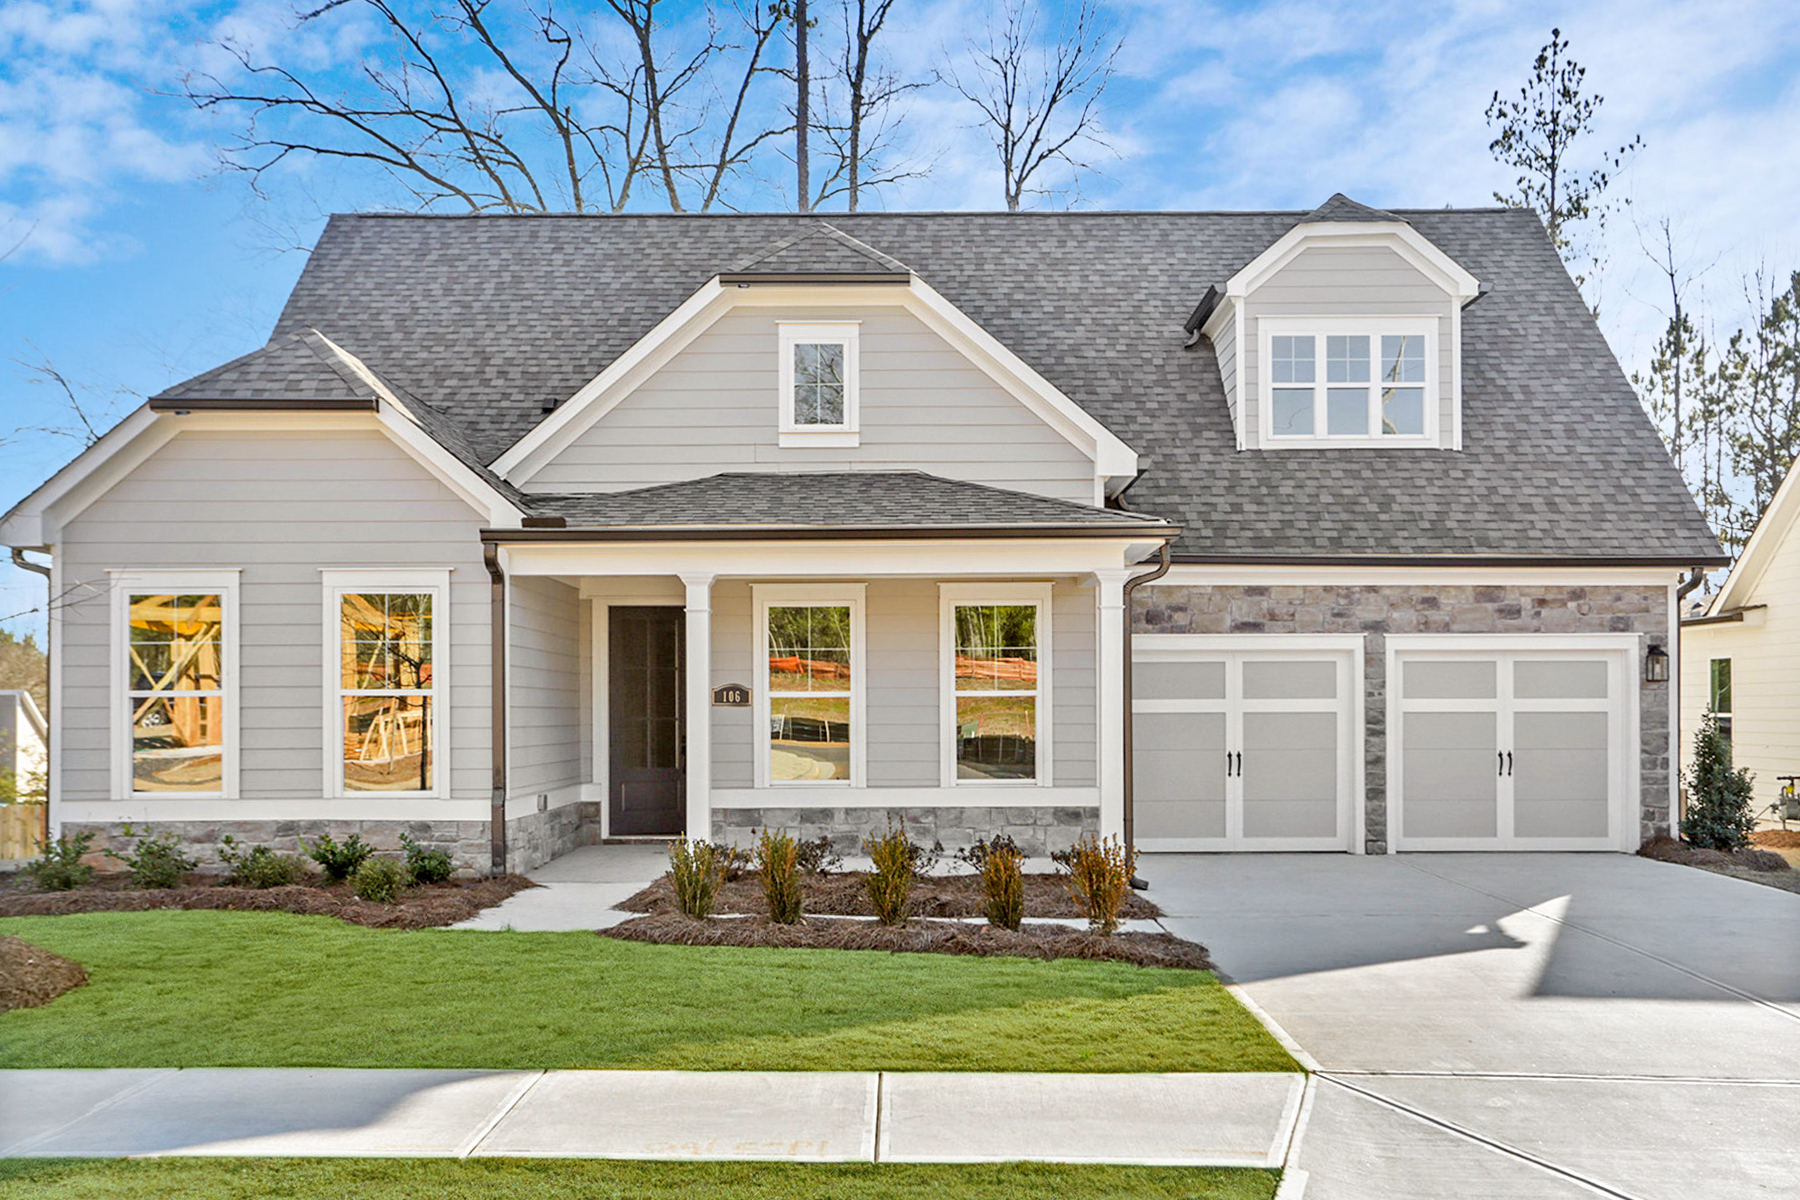 Single Family Homes for Sale at Carefree Living- Welcome To The New Retreat At Oak Grove 106 Oakdale Woods Lane Acworth, Georgia 30102 United States